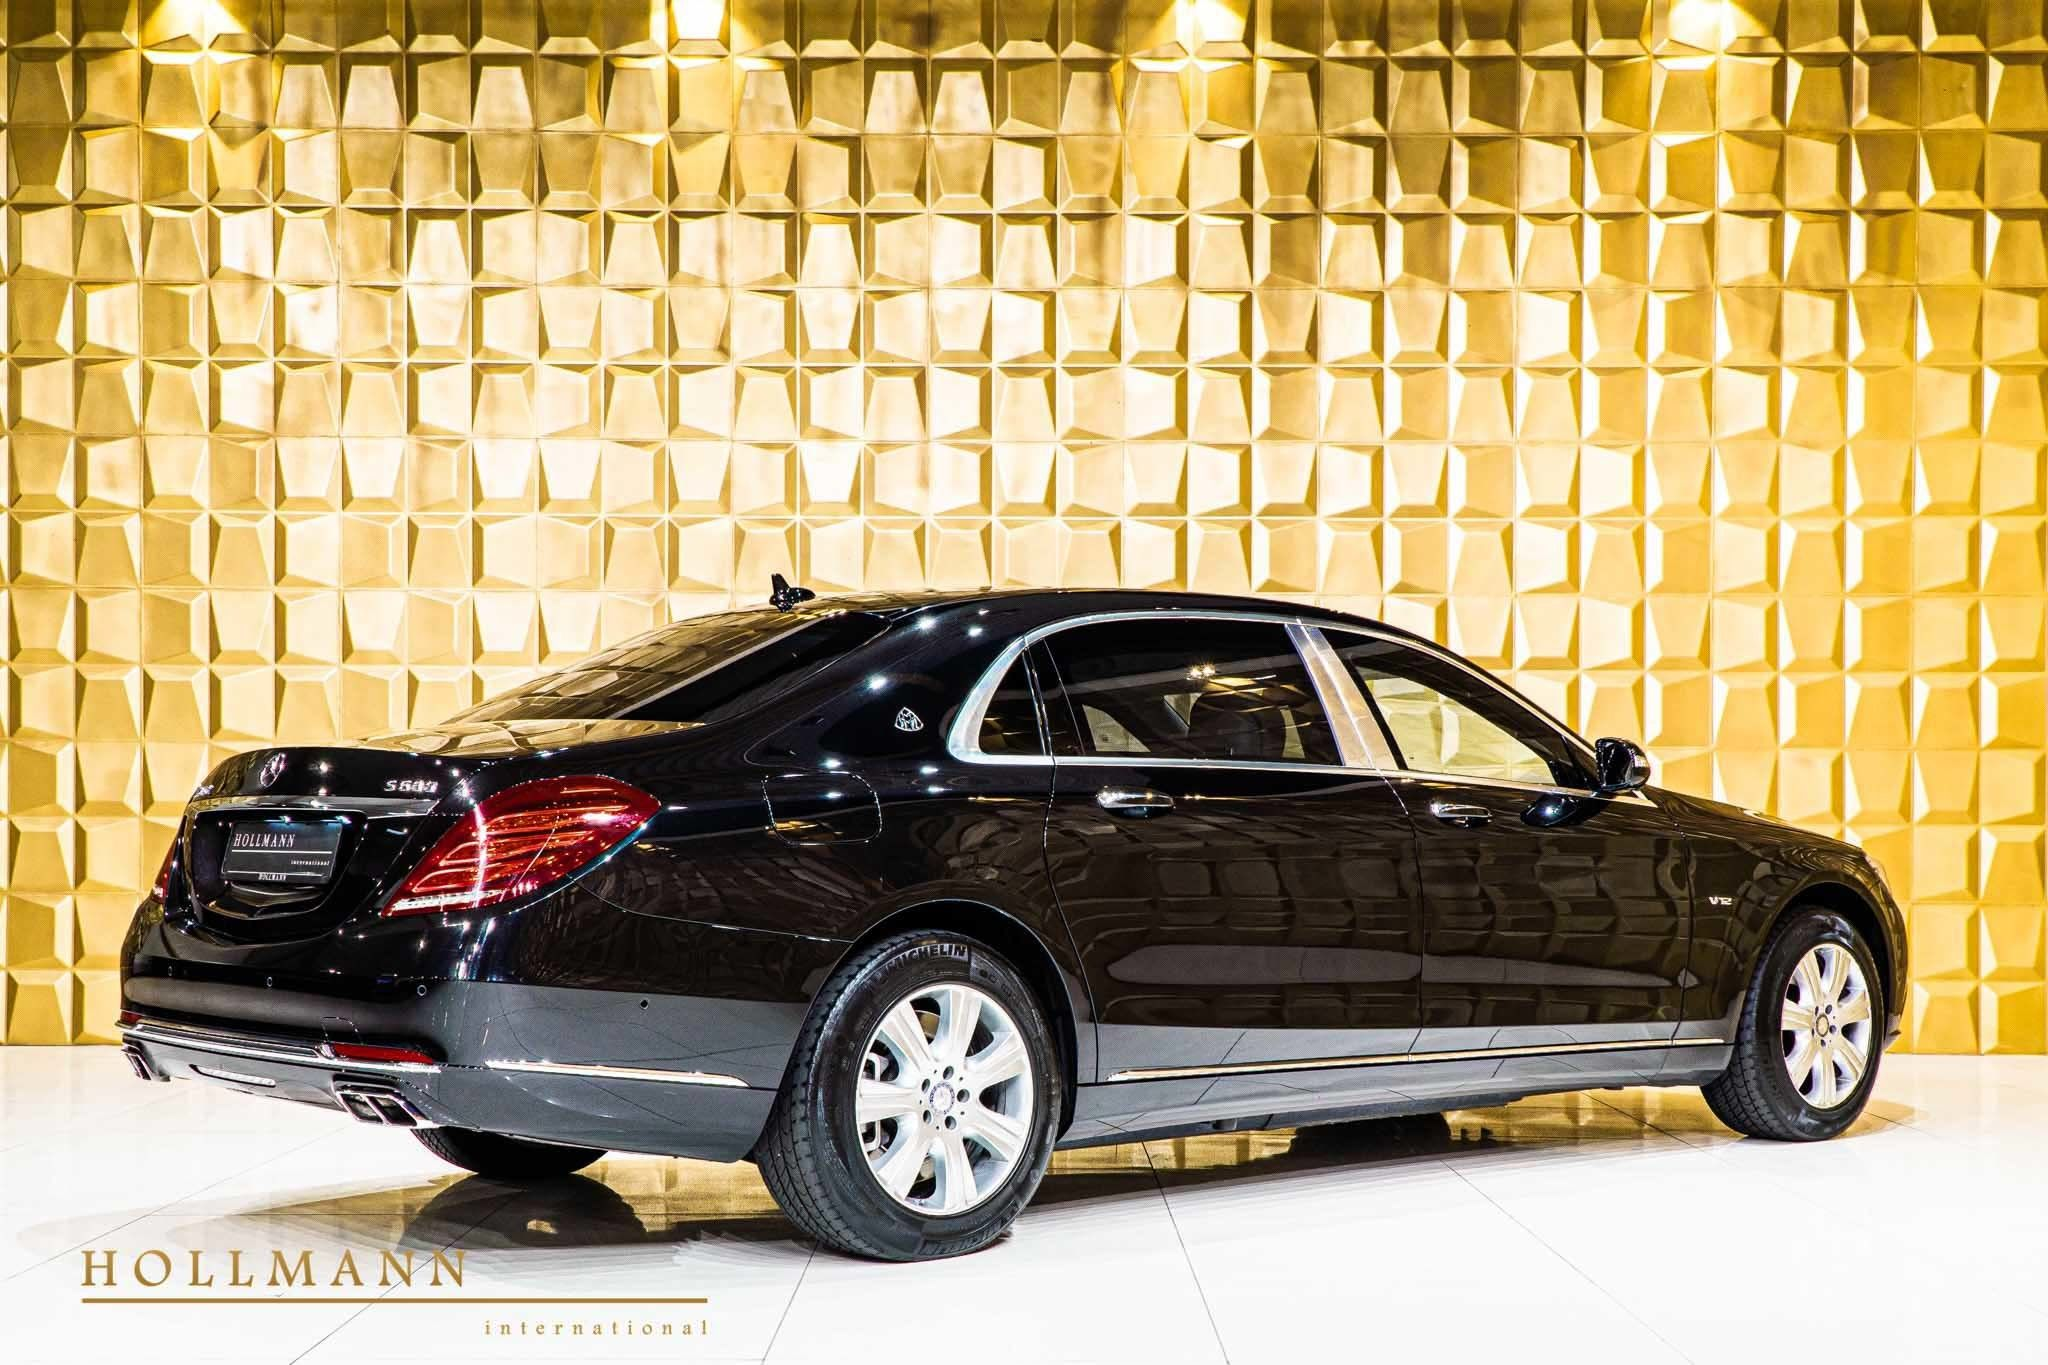 Mercedes Maybach S 600 Guard B7 Vr9 Armoured Hollmann Luxury Pulse Cars Germany For Sale On Luxurypulse Mercedes Maybach Maybach Mercedes Benz Maybach